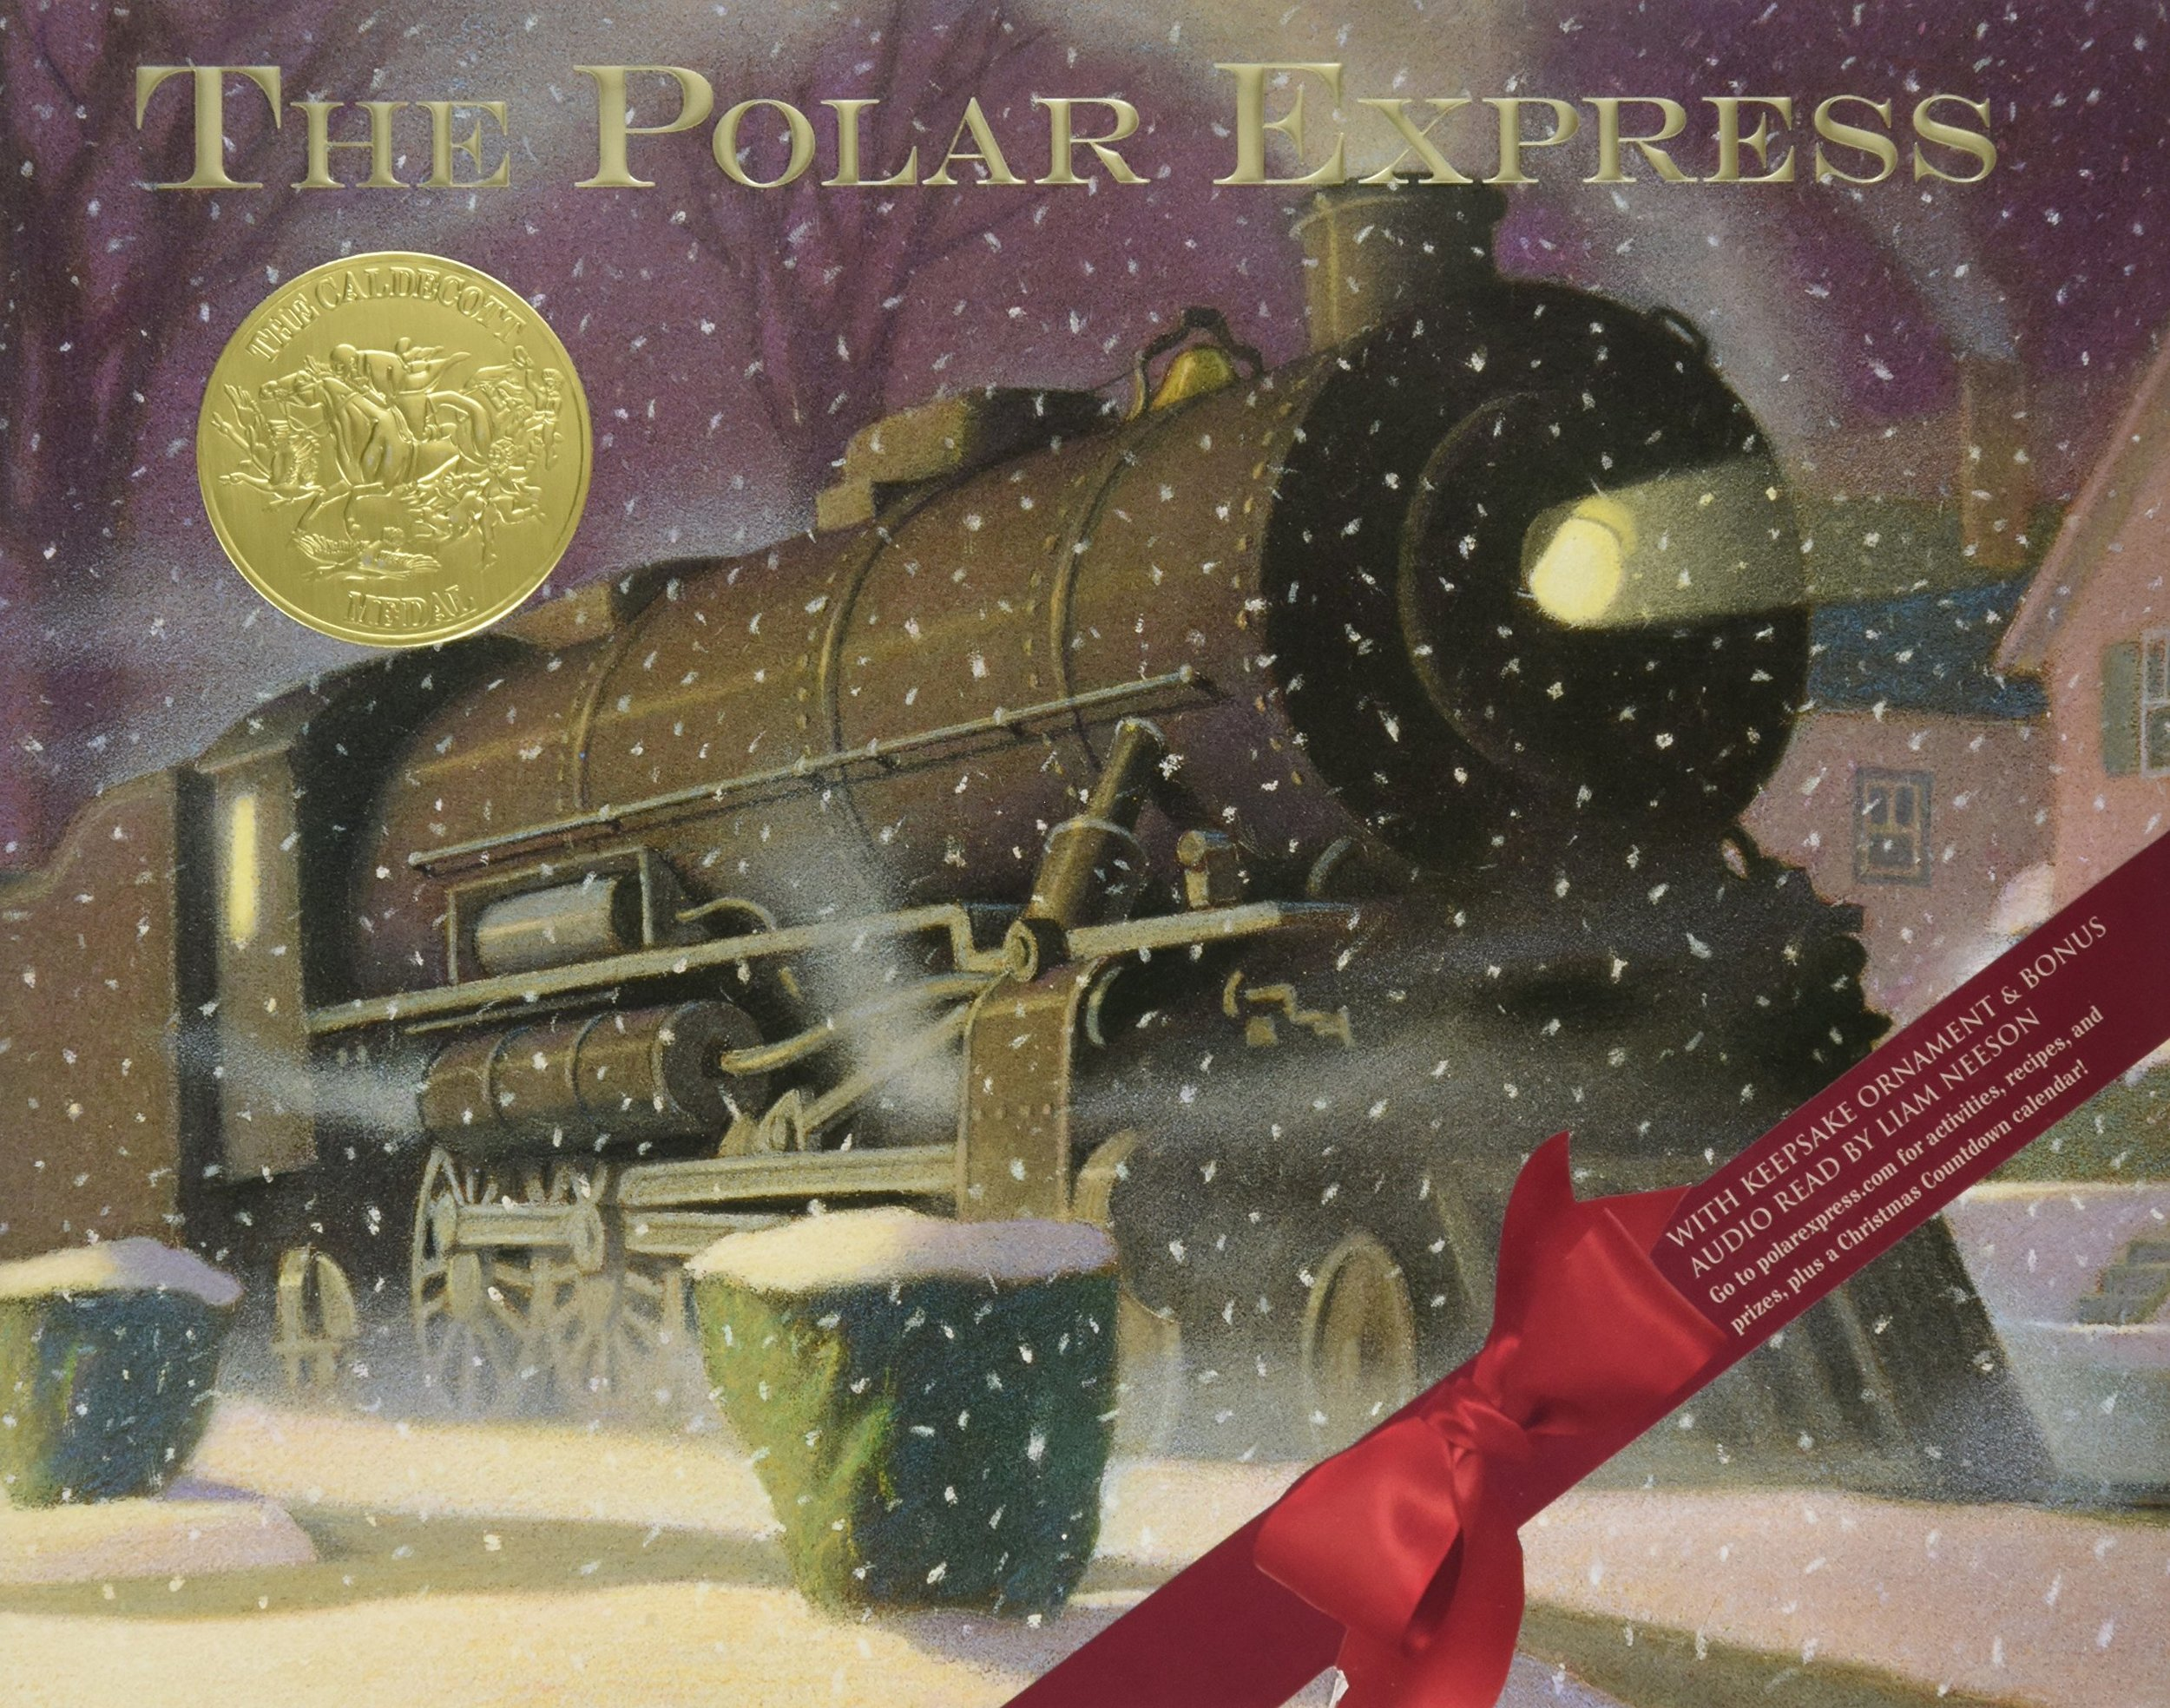 The Best Christmas Picture Books - The Polar Express.jpg